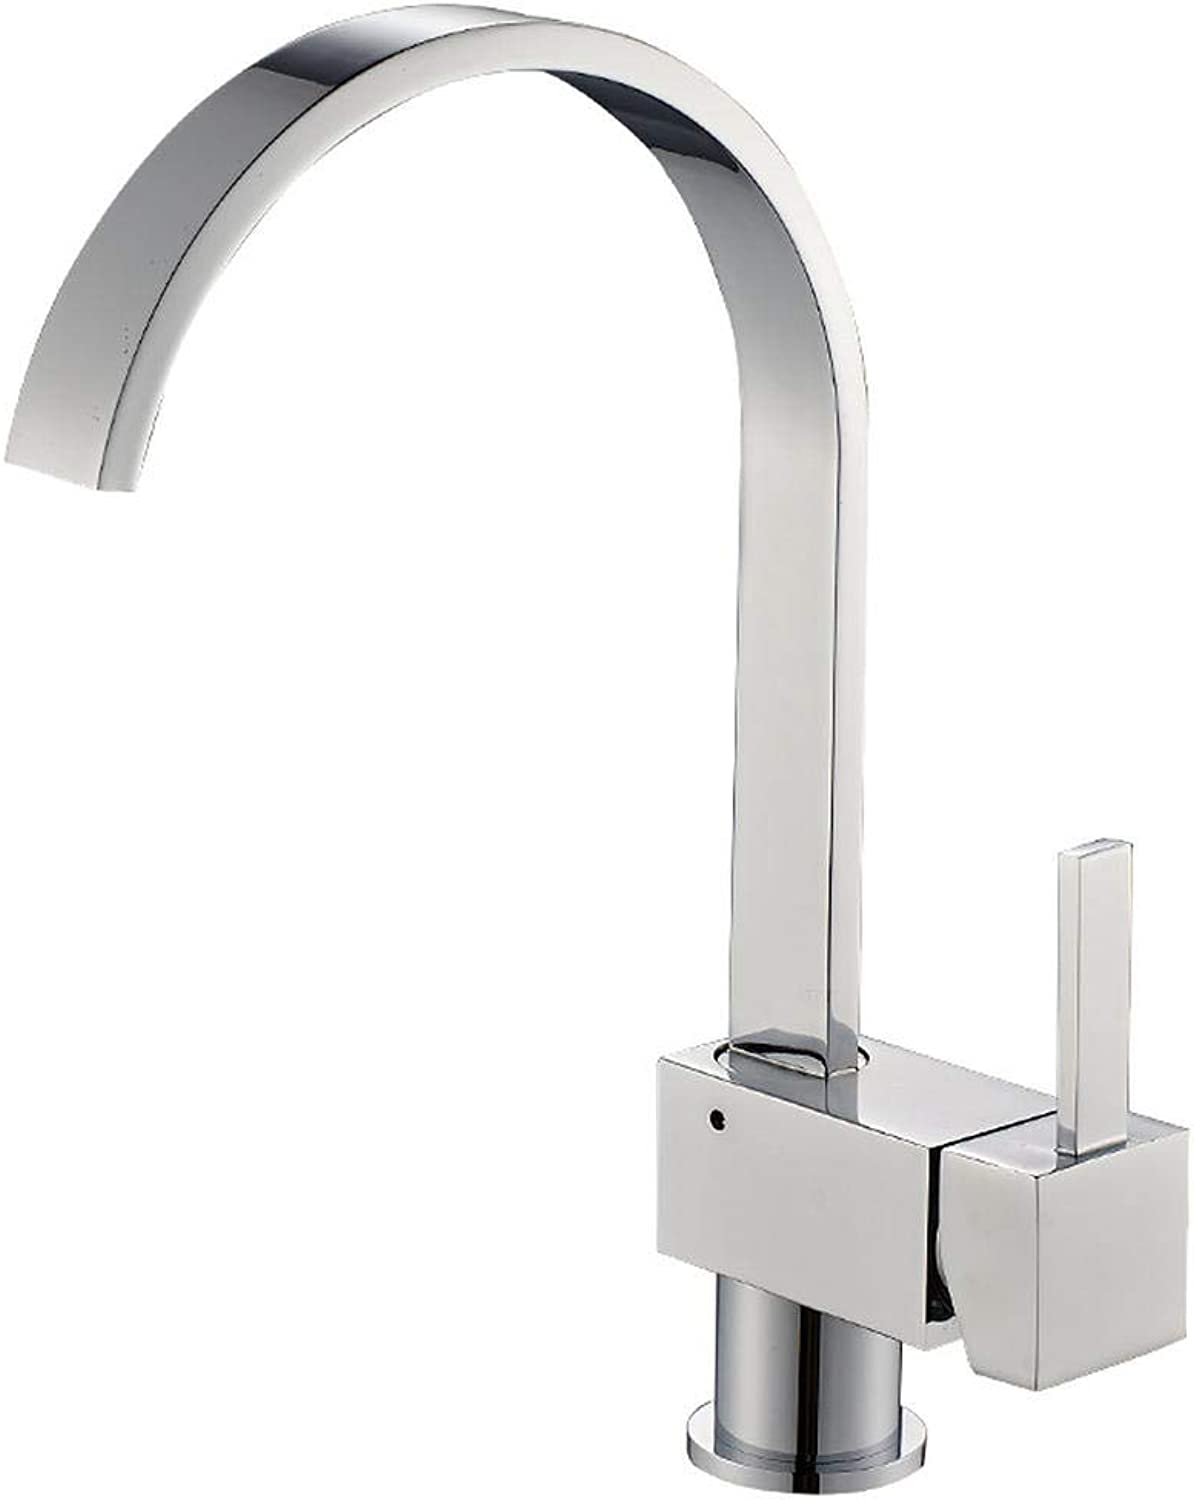 Kitchen Cold and hot Water Faucet Kitchen Cold and hot Water Faucet Dishwasher Faucet quadrangular redary Bathroom Faucet Wholesale